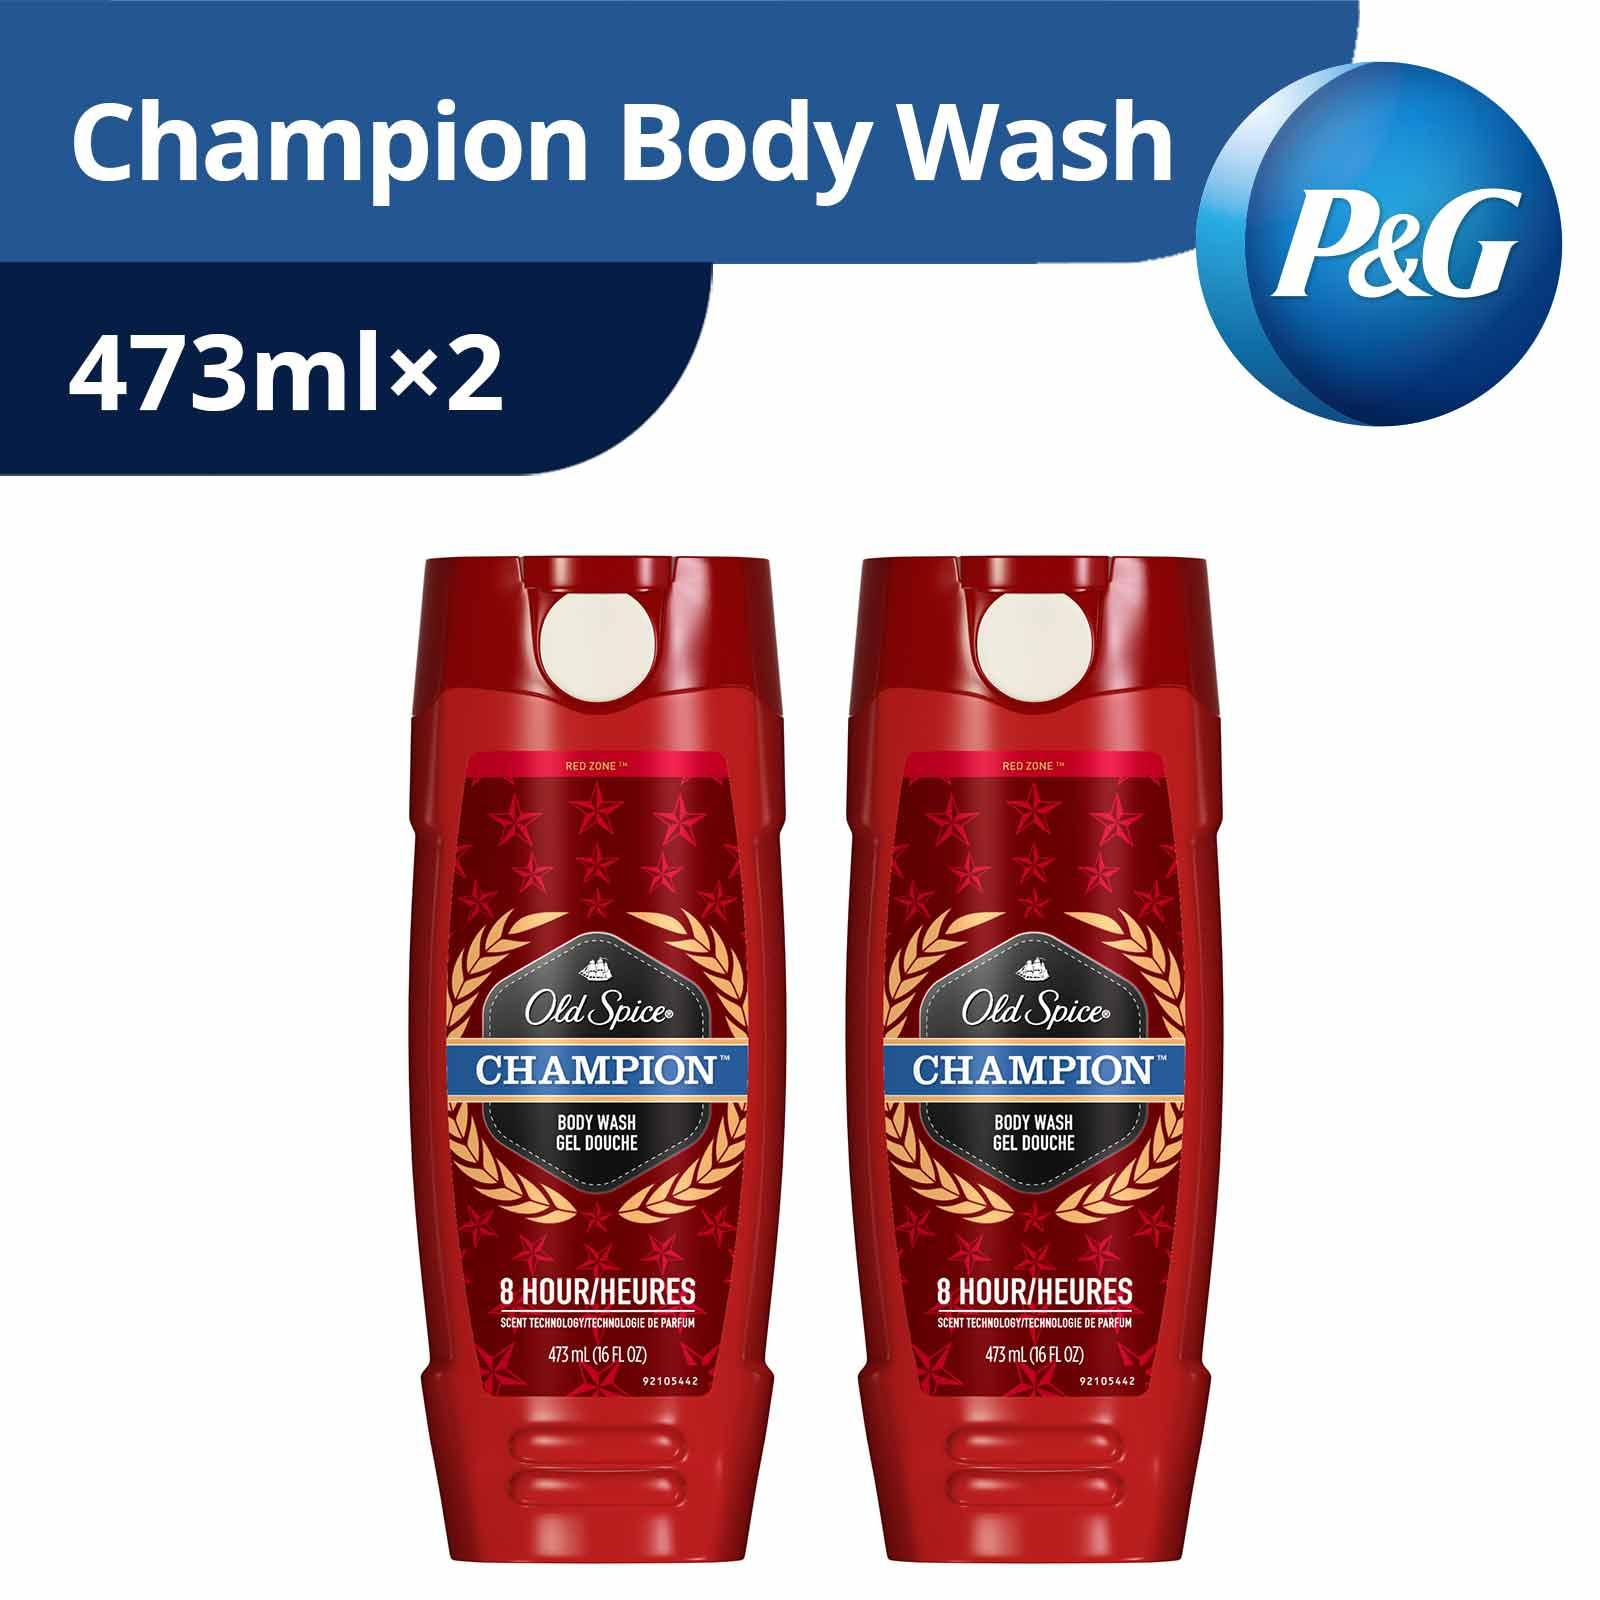 Buy Latest Bath Products Body Care Lazada Dettol Gold 250ml X2pcs Wash Classic Clean Reffil New Launch Old Spice Fresh Collection Champion Fiji Timber